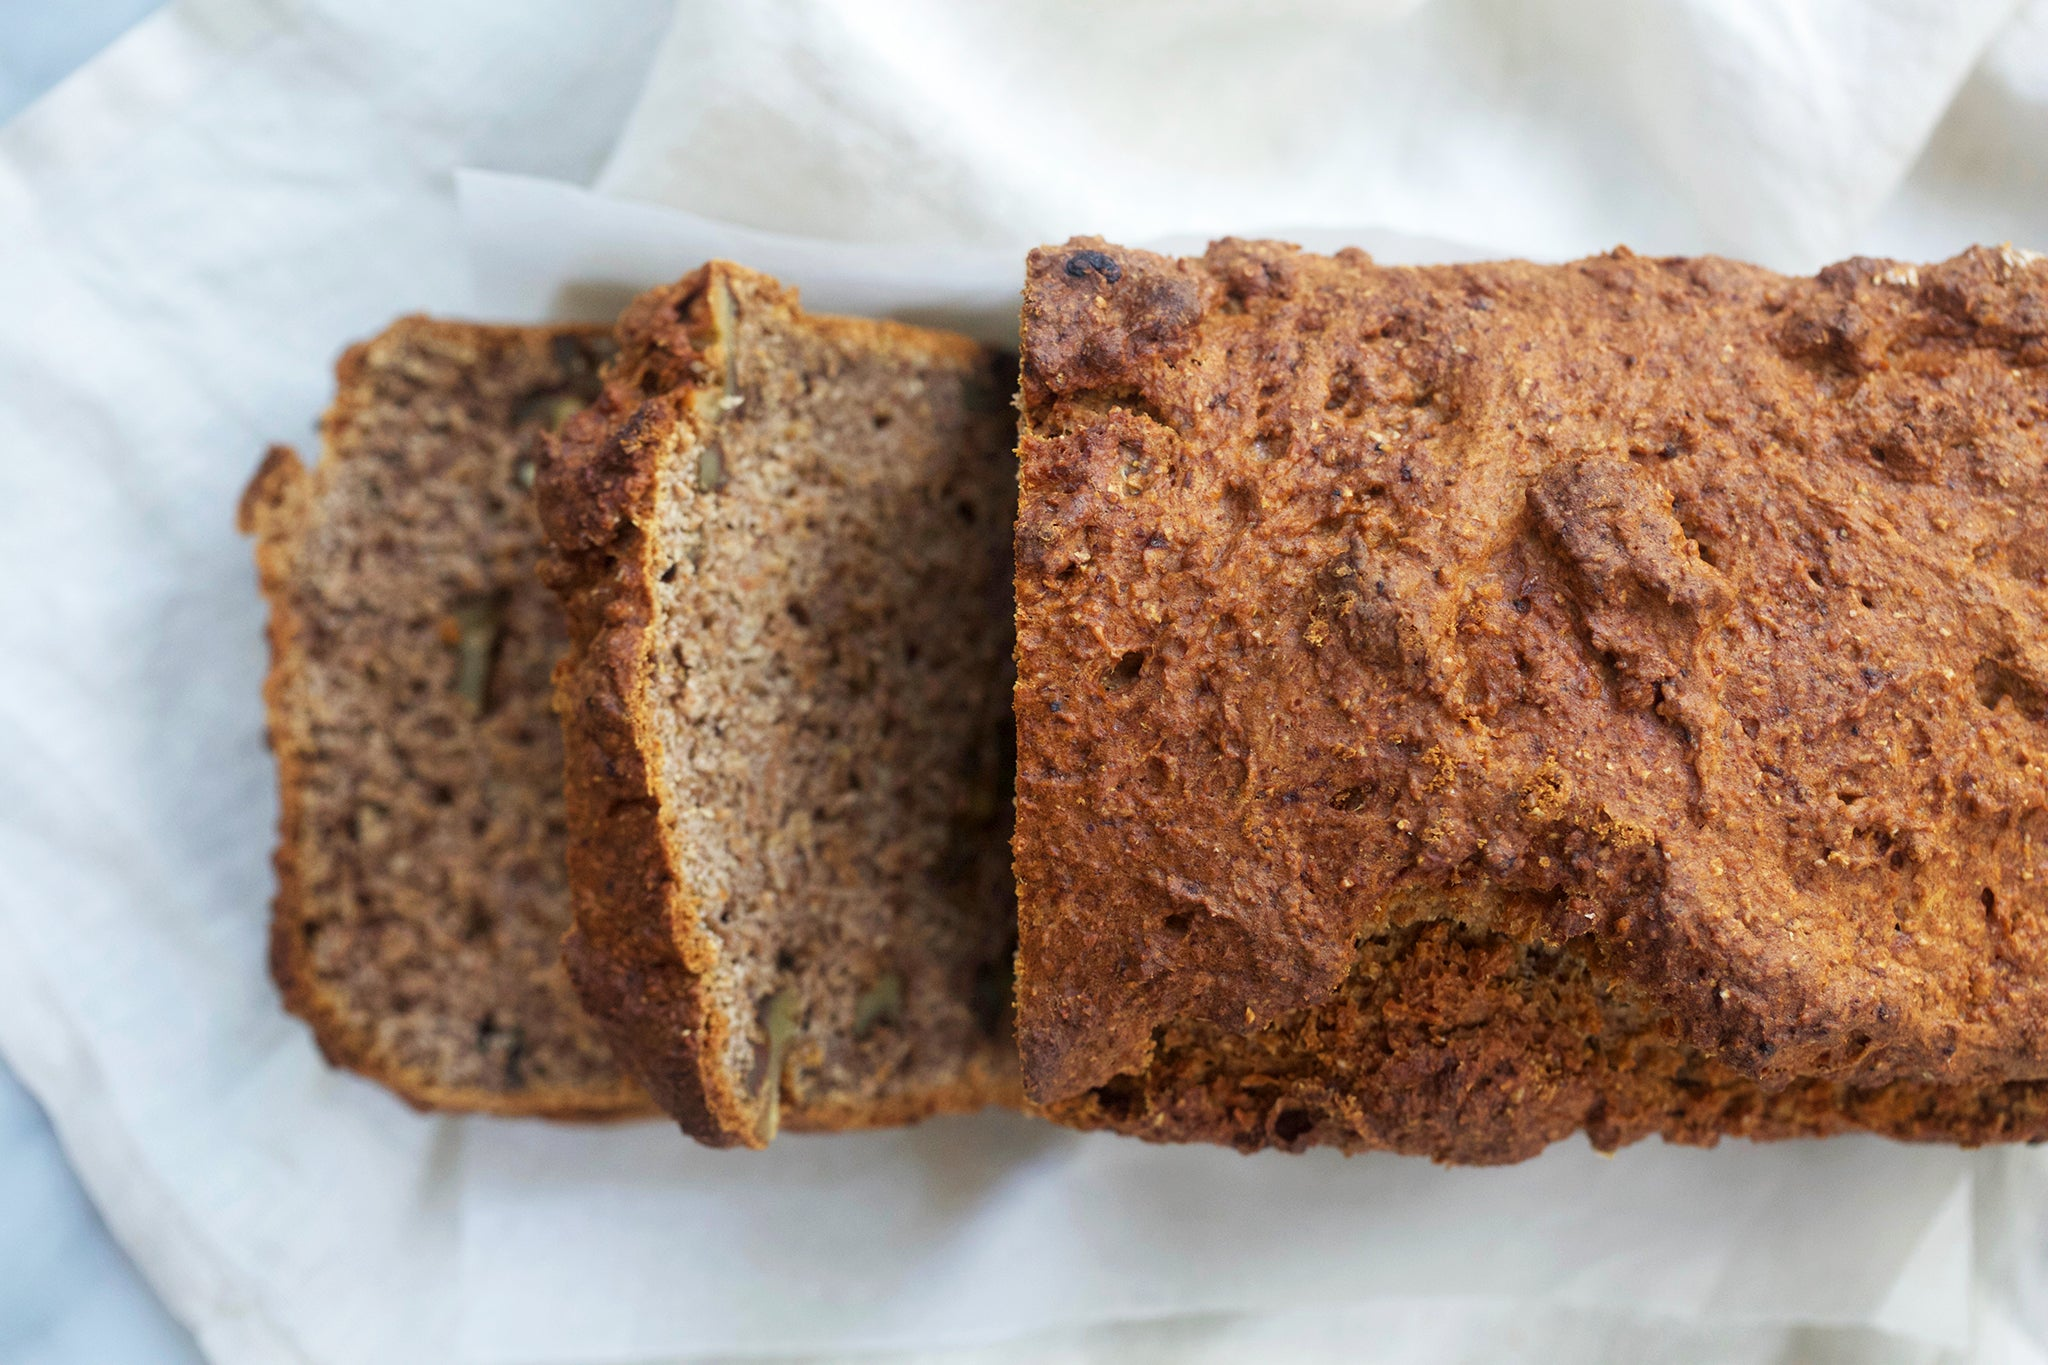 Vegan Gluten Free BANANA WALNUT BREAD - healthy, low sugar, recipe, breakfast, no refined sugar, dairy free, egg free